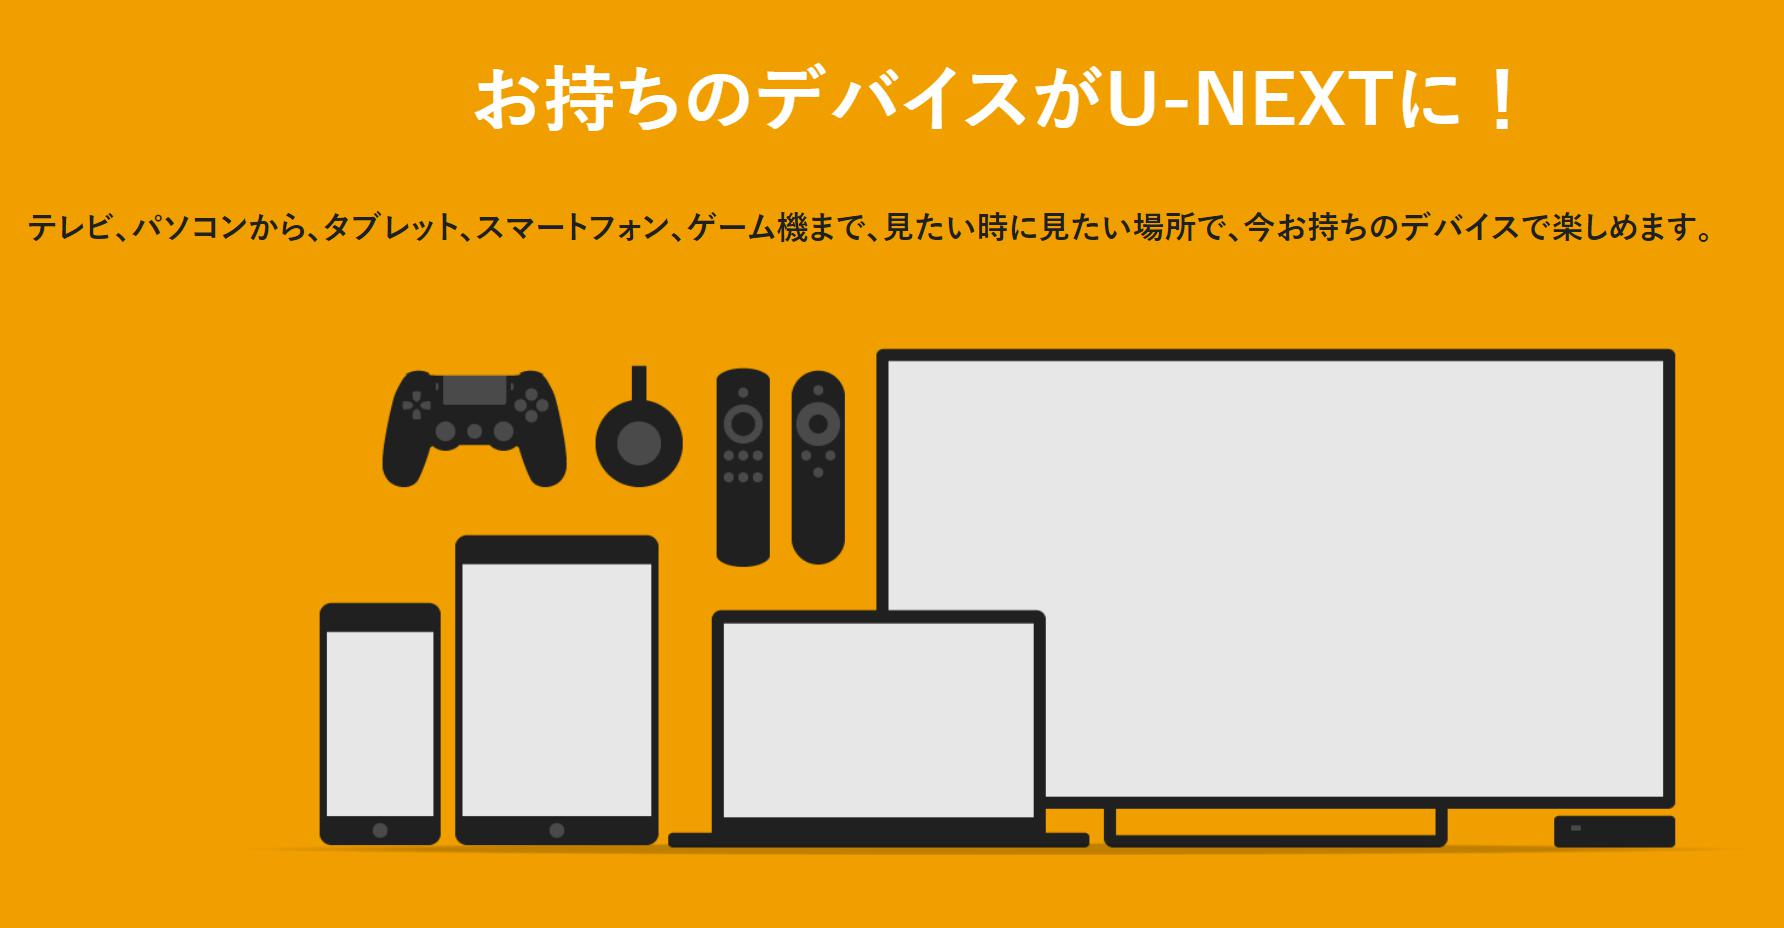 U-NEXTはマルチデバイス対応!